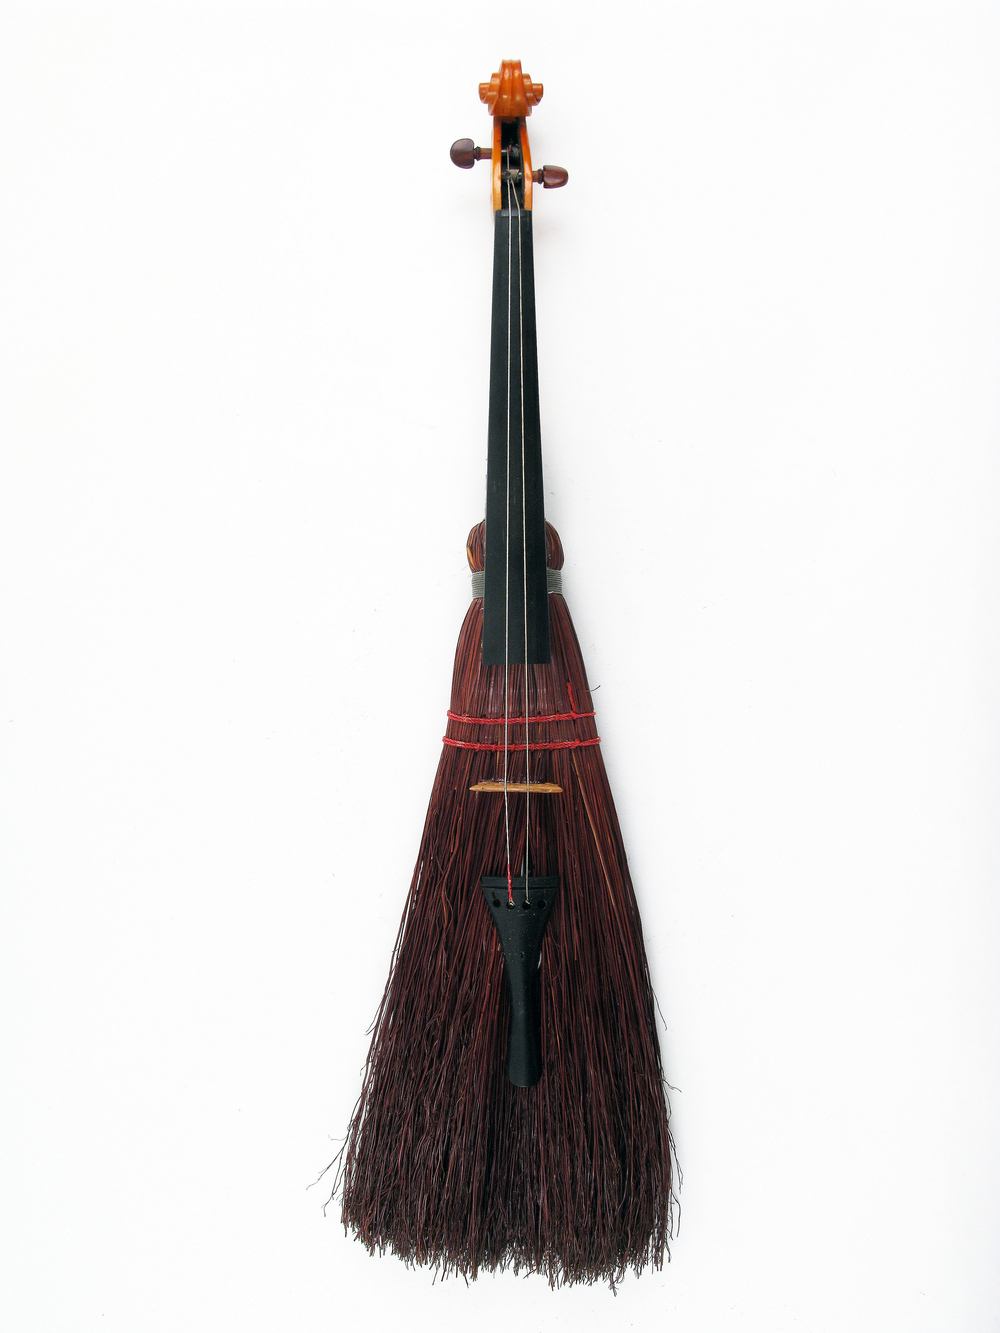 Big Brush Violin.jpg